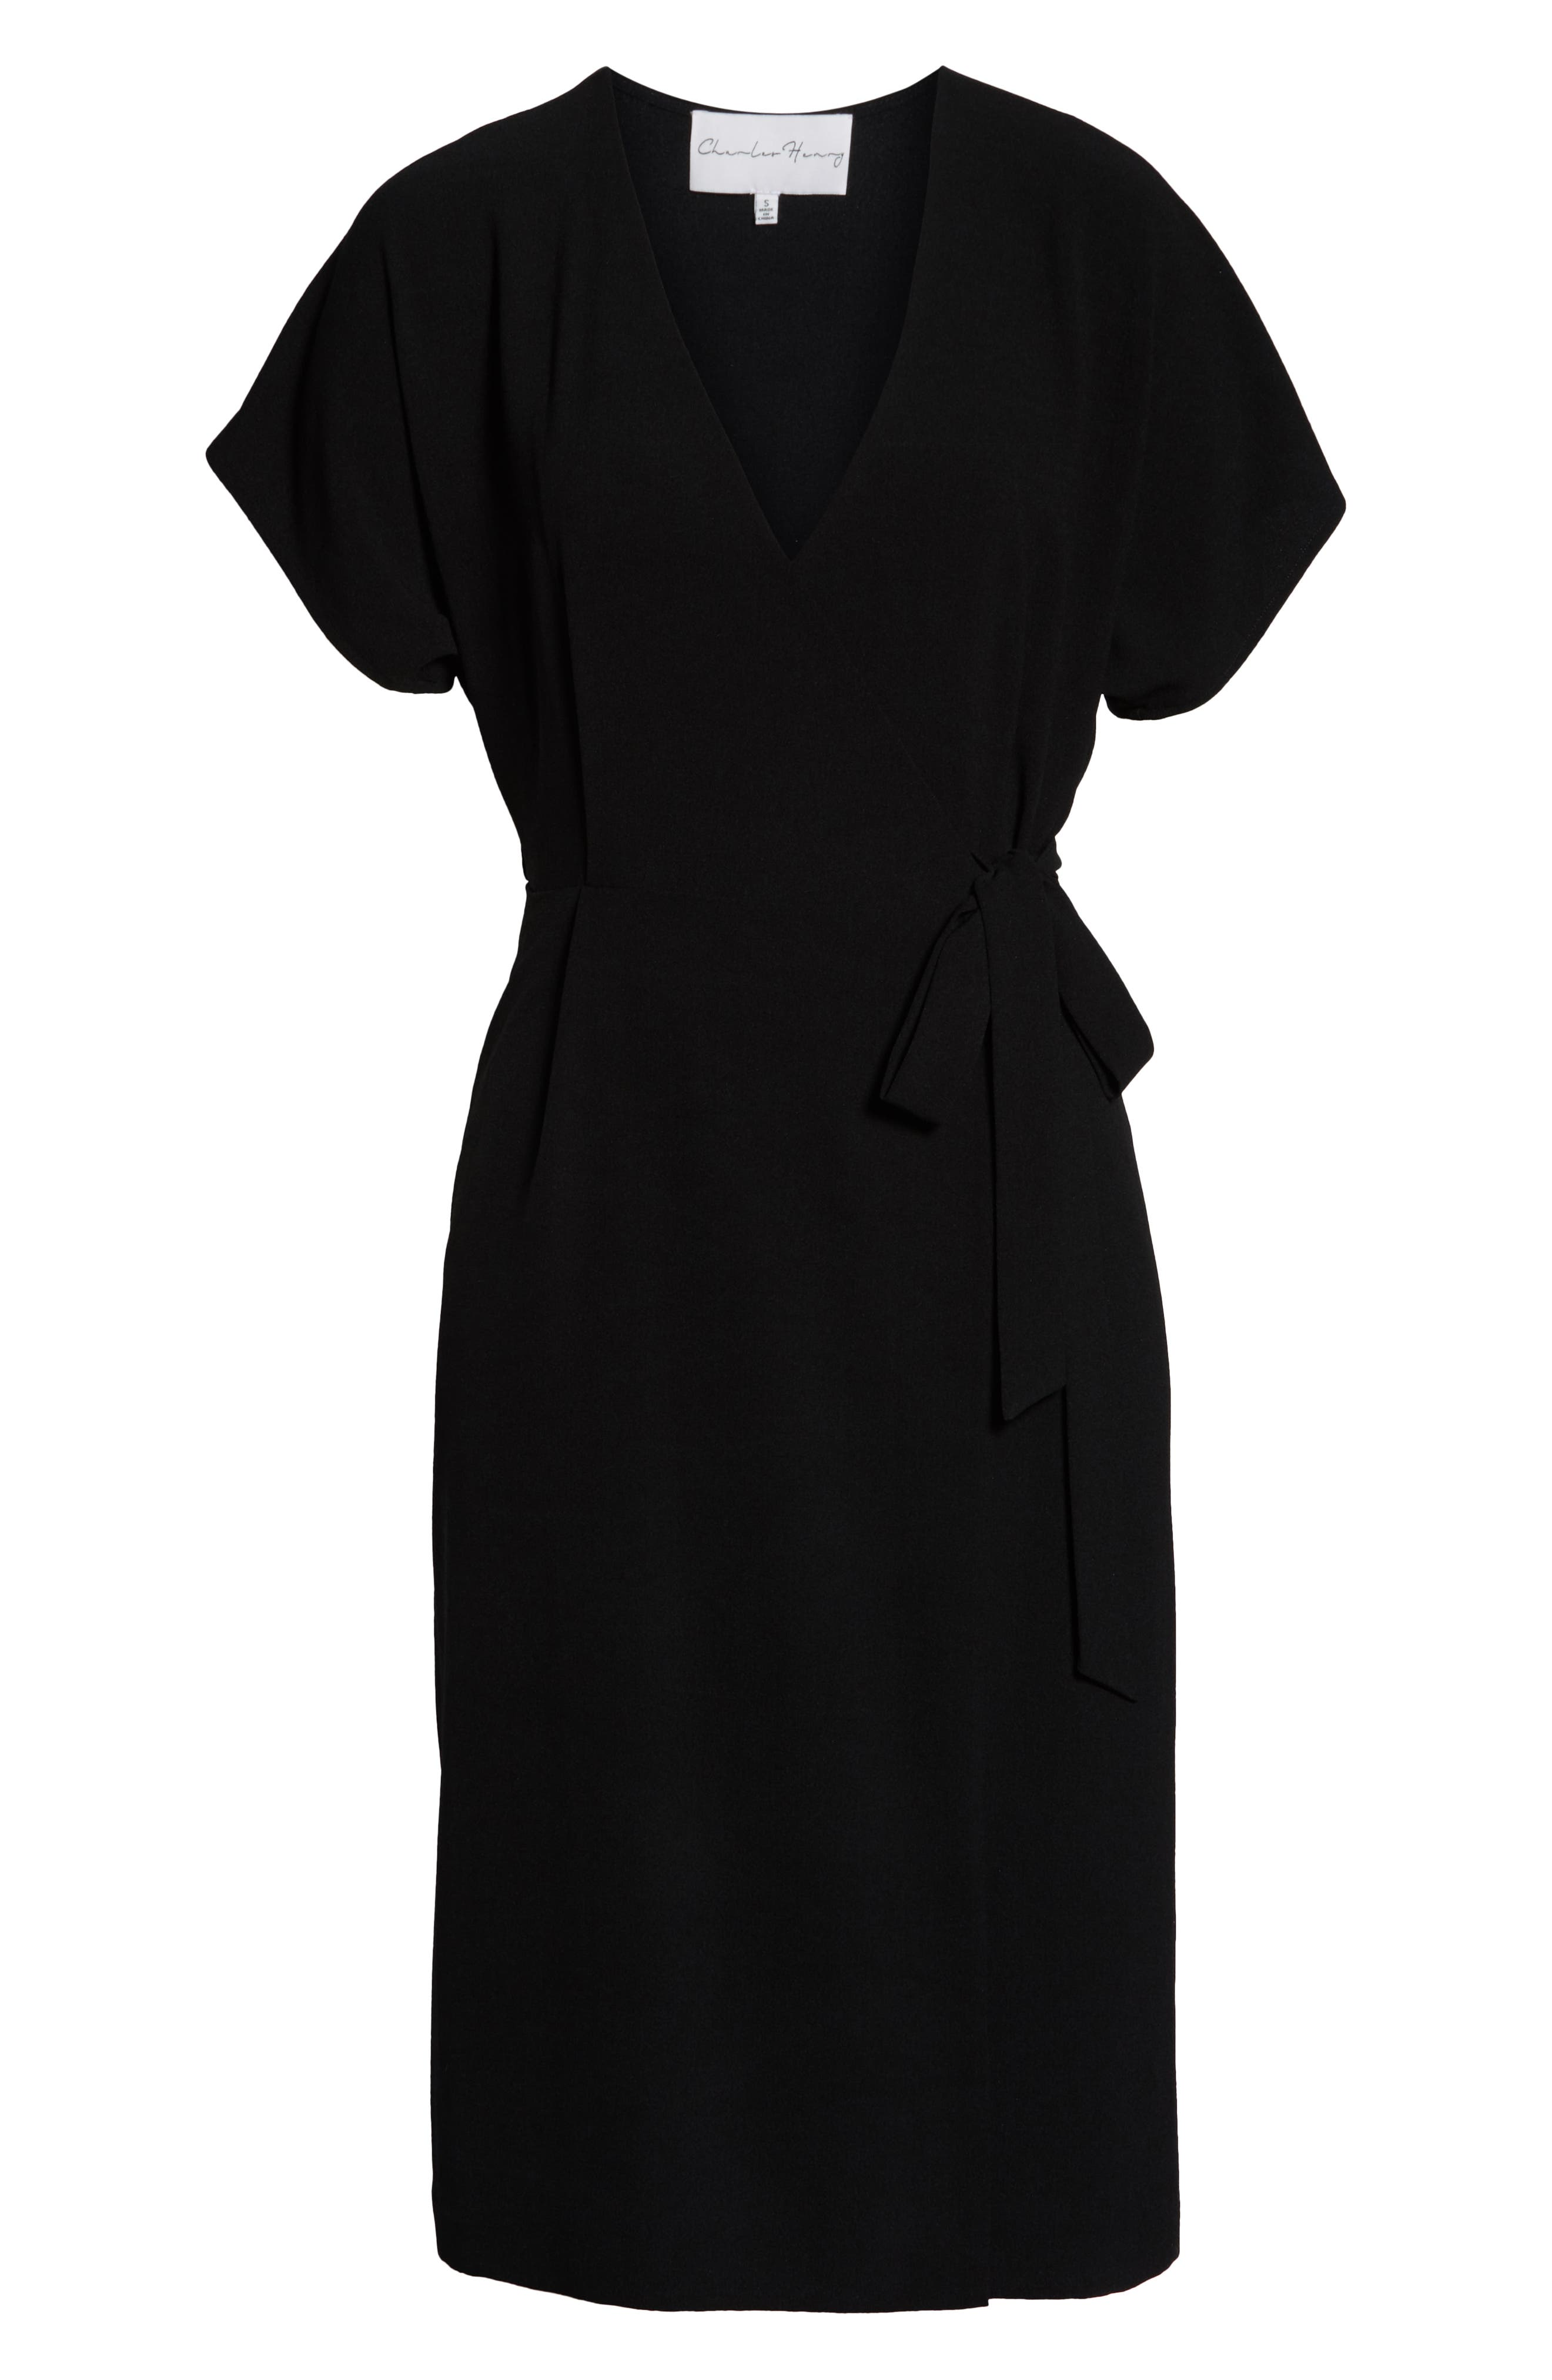 CHARLES HENRY, Faux Wrap Dress, Alternate thumbnail 7, color, BLACK